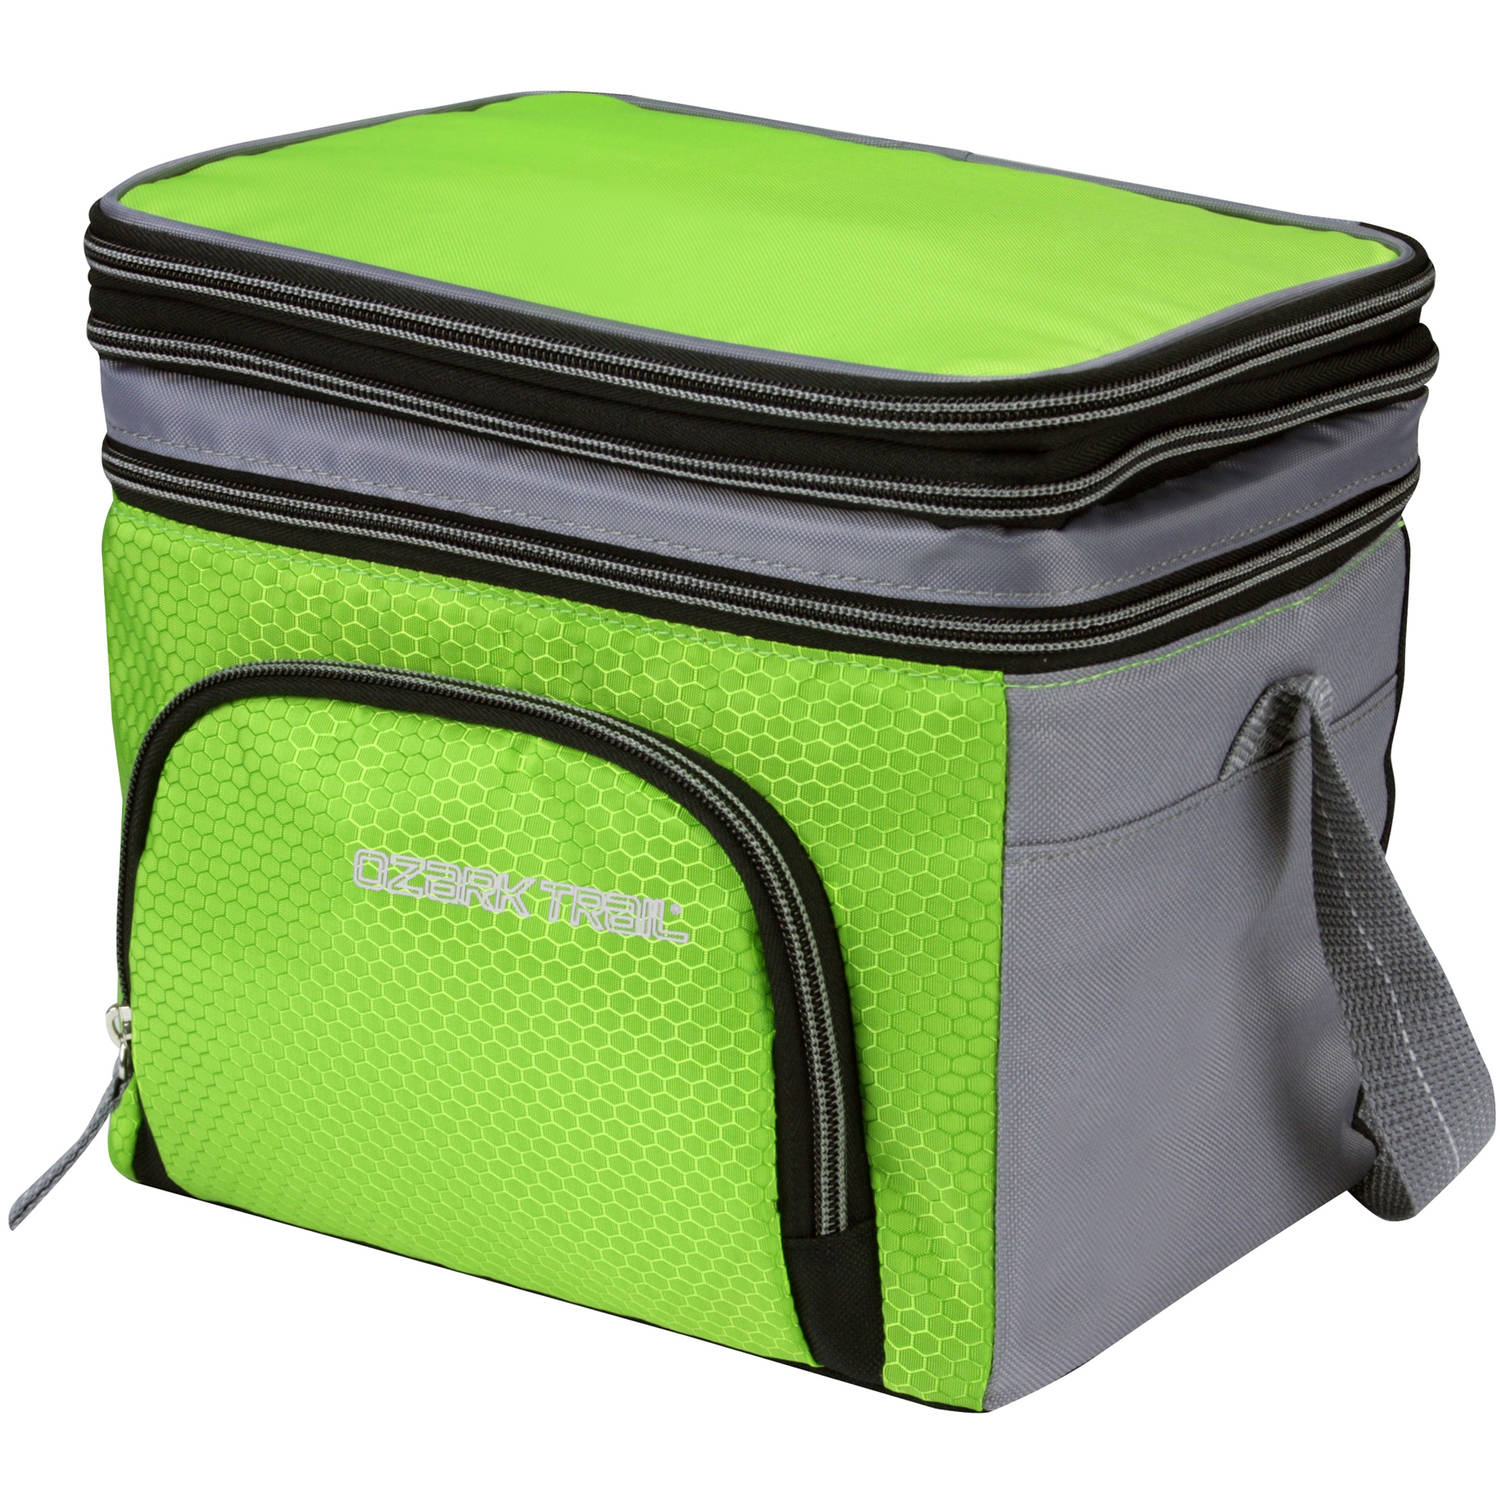 Ozark Trail 6-Can Cooler with Removable Hardliner, Green